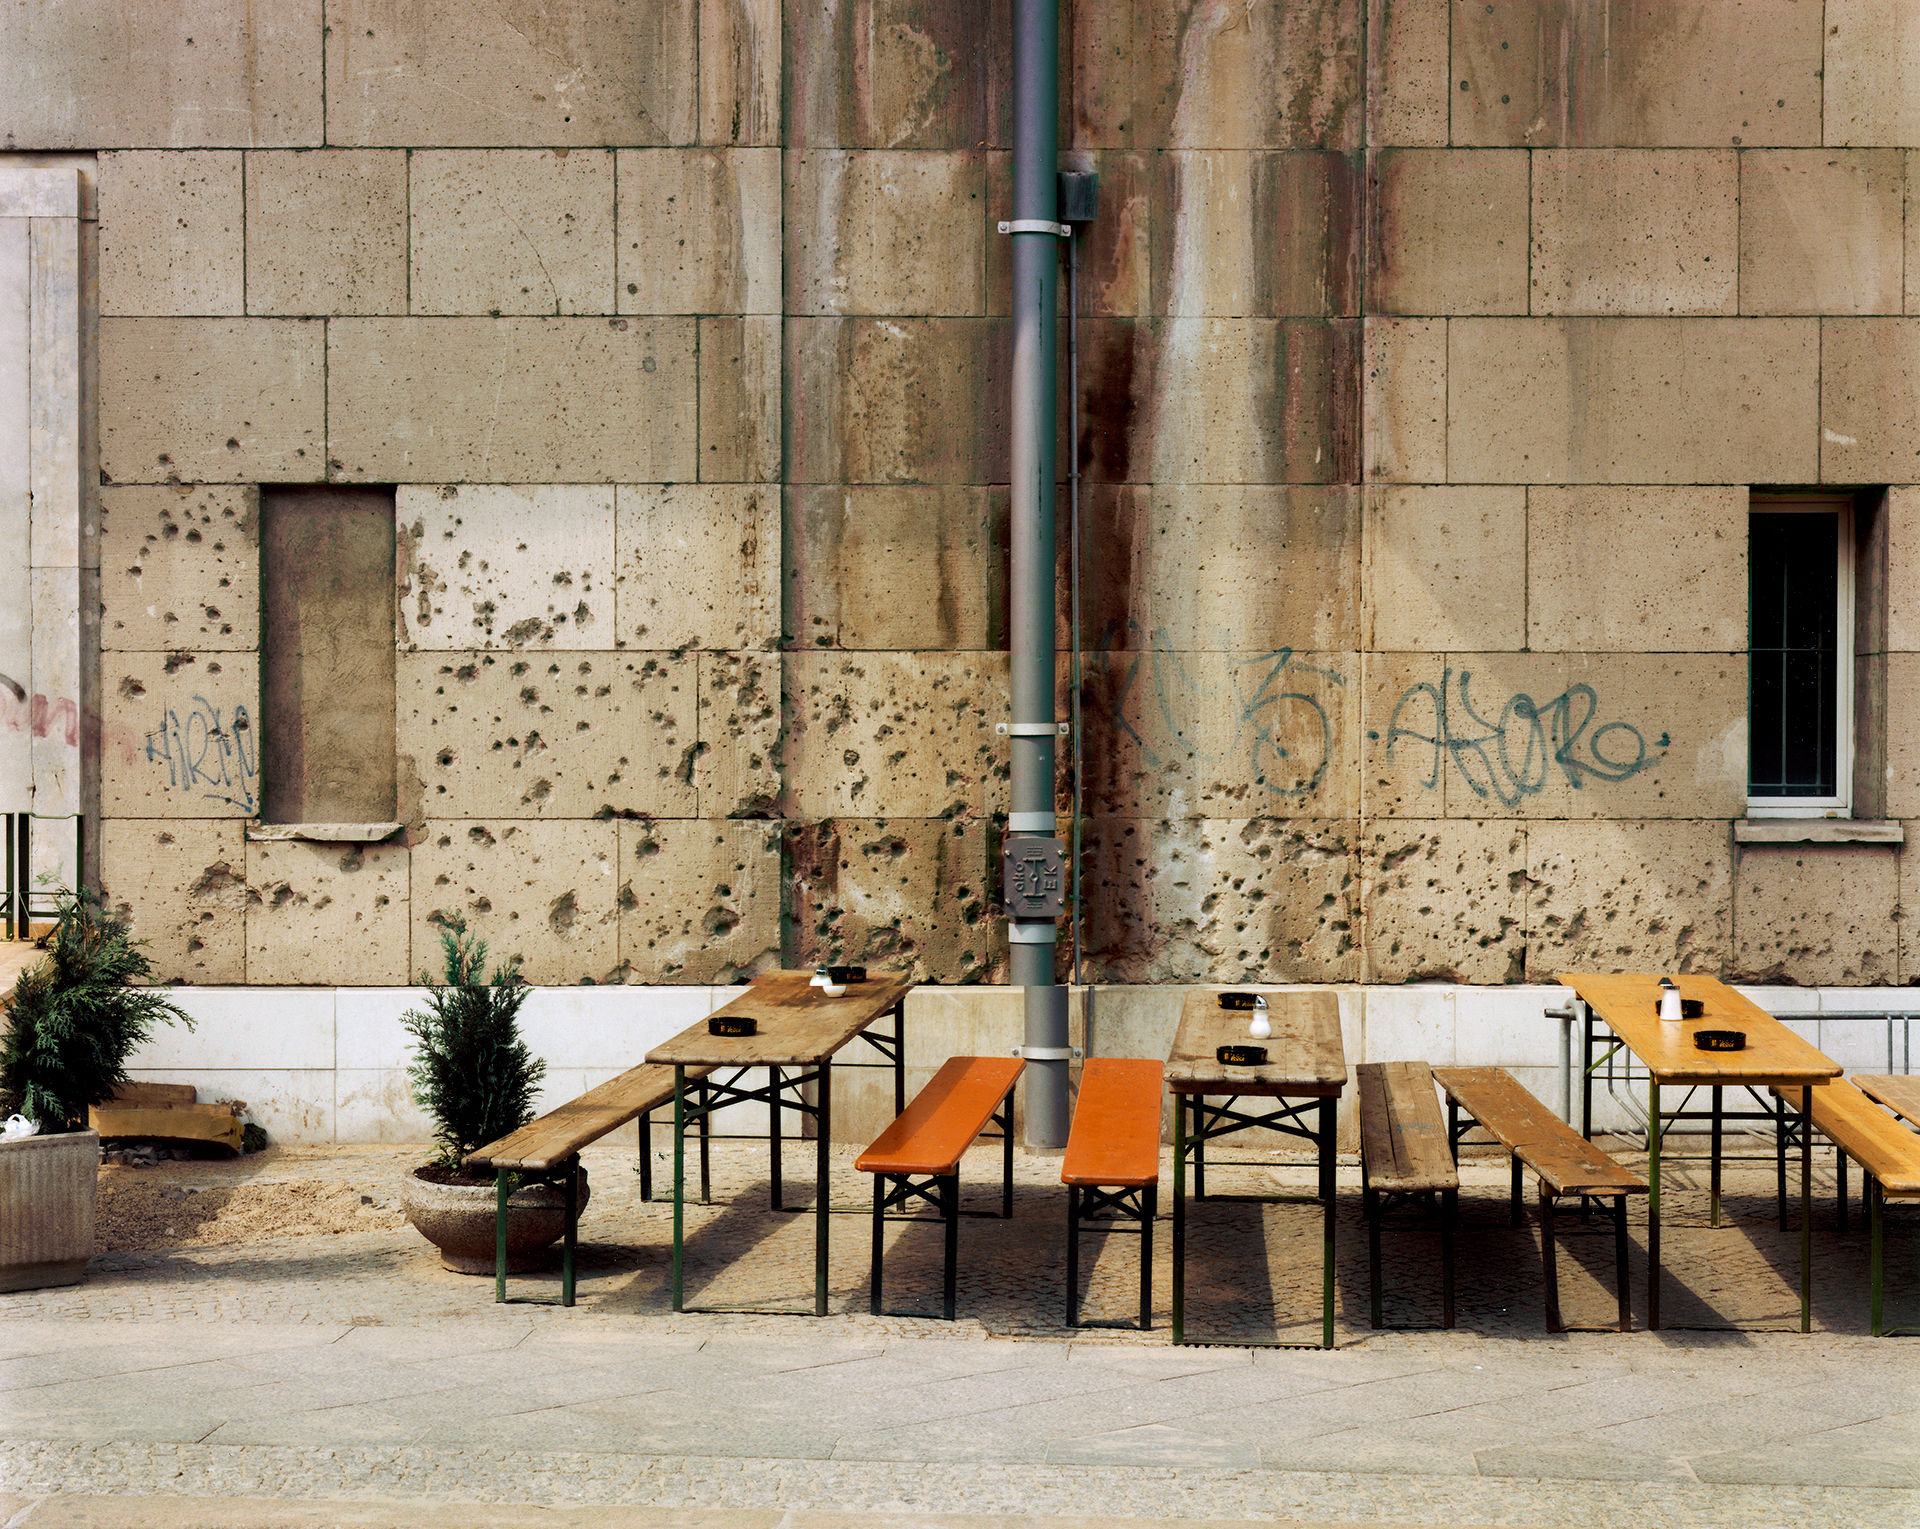 Bullet Holes and Benches (Georgenstr)